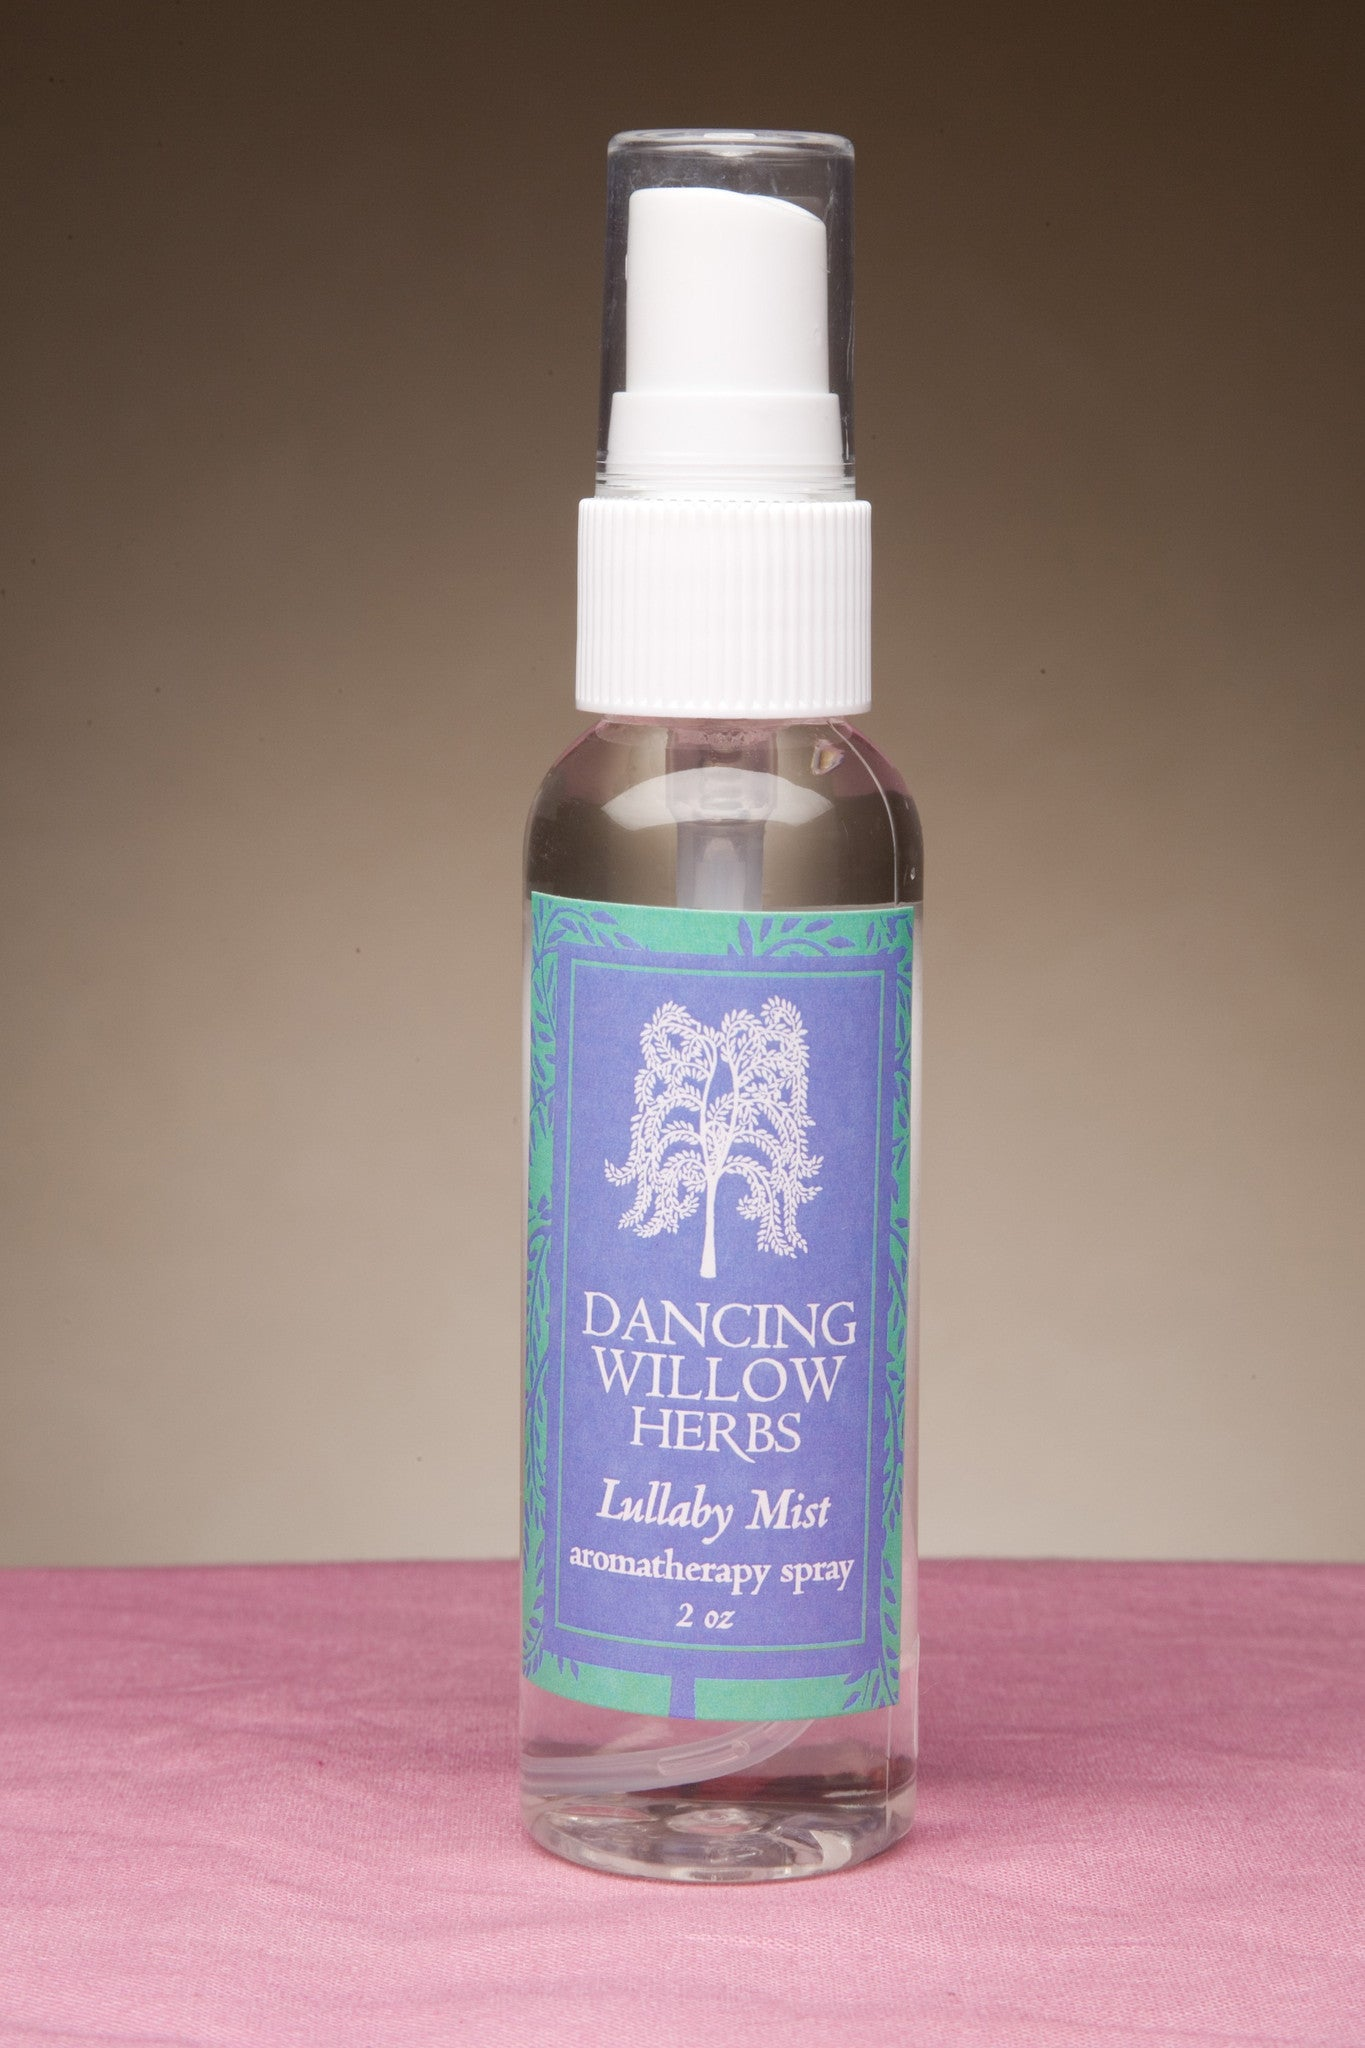 Lullaby Mist - Dancing Willow Herbs Room spray - herbal formulas